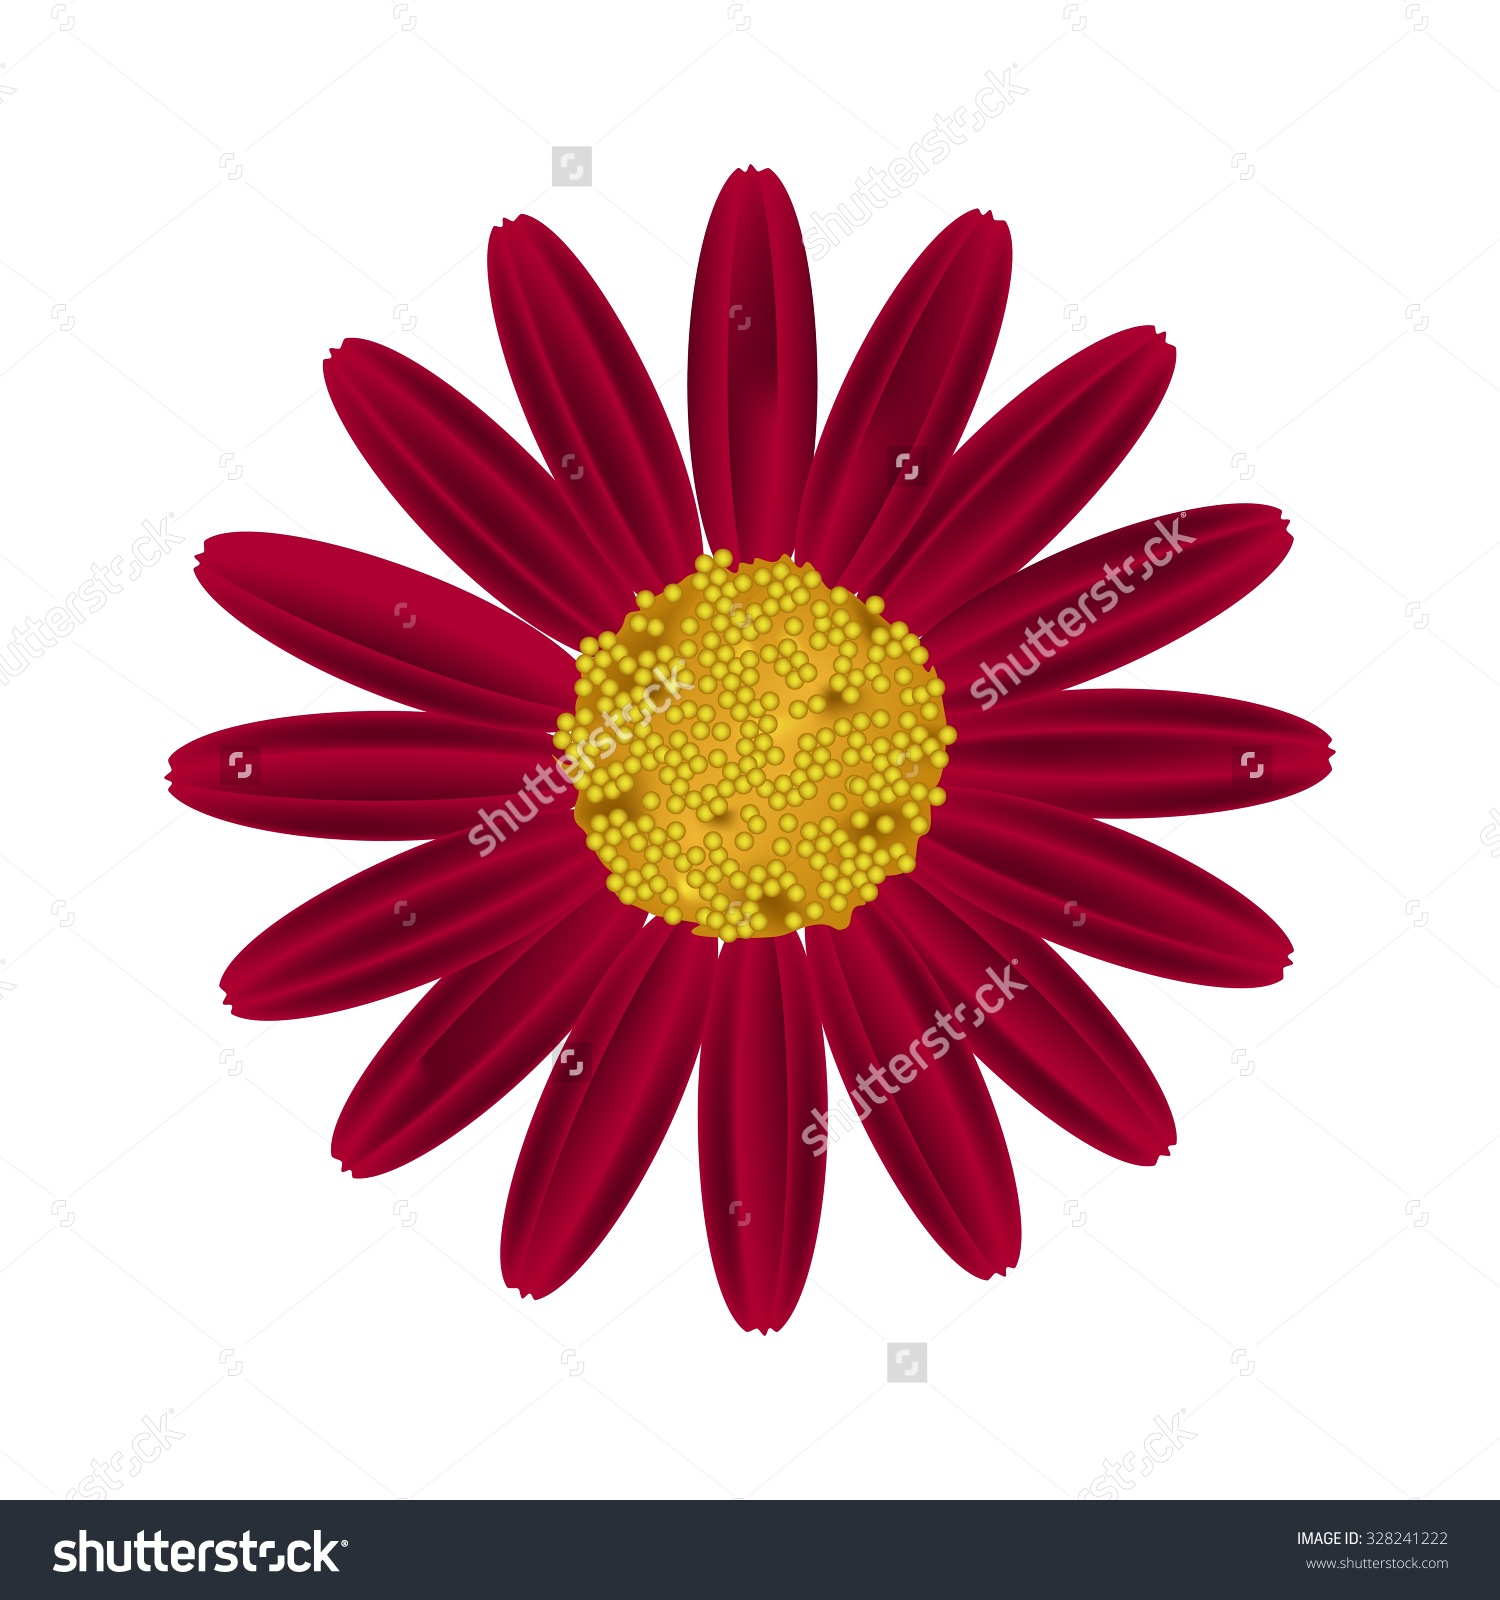 Symbol Of Love, Bright And Beautiful Red Osteospermum Daisy Flower.